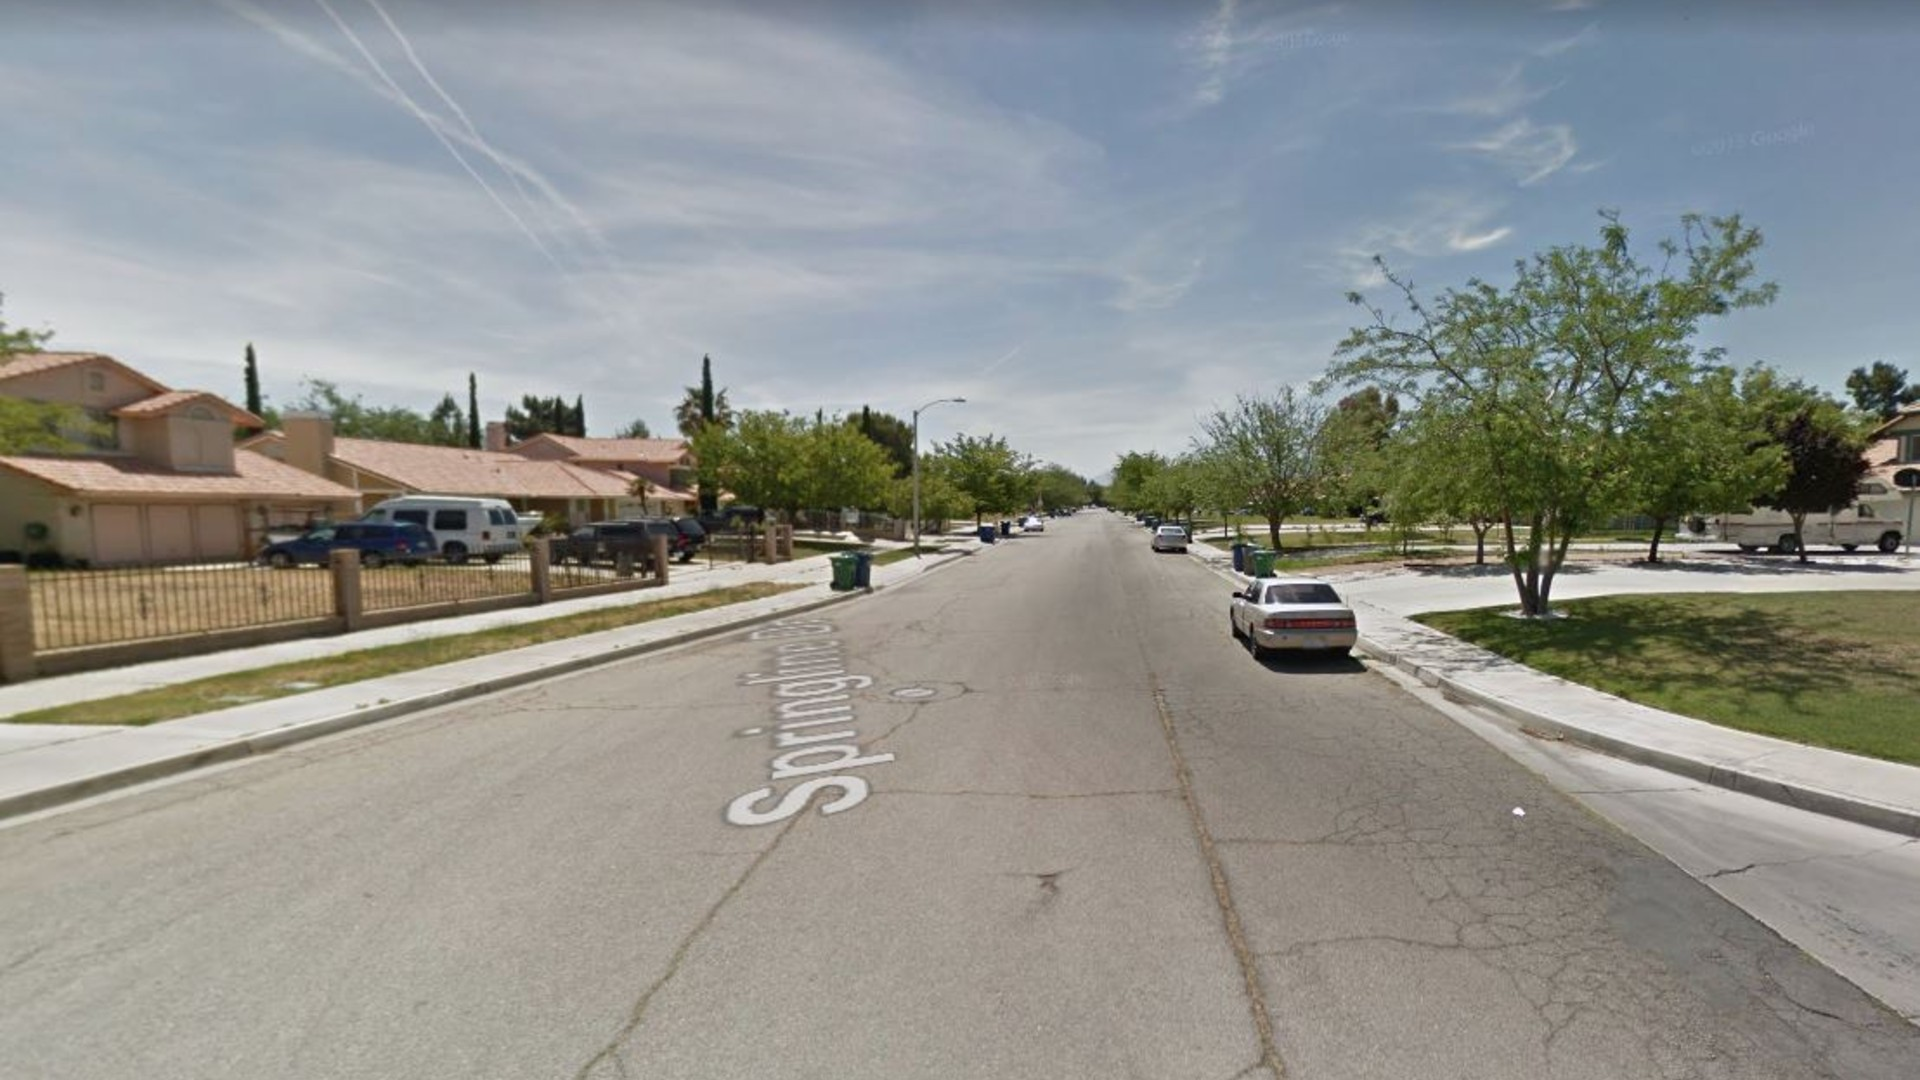 A Google Maps image shows the 1200 block of Springline Drive in Palmdale.